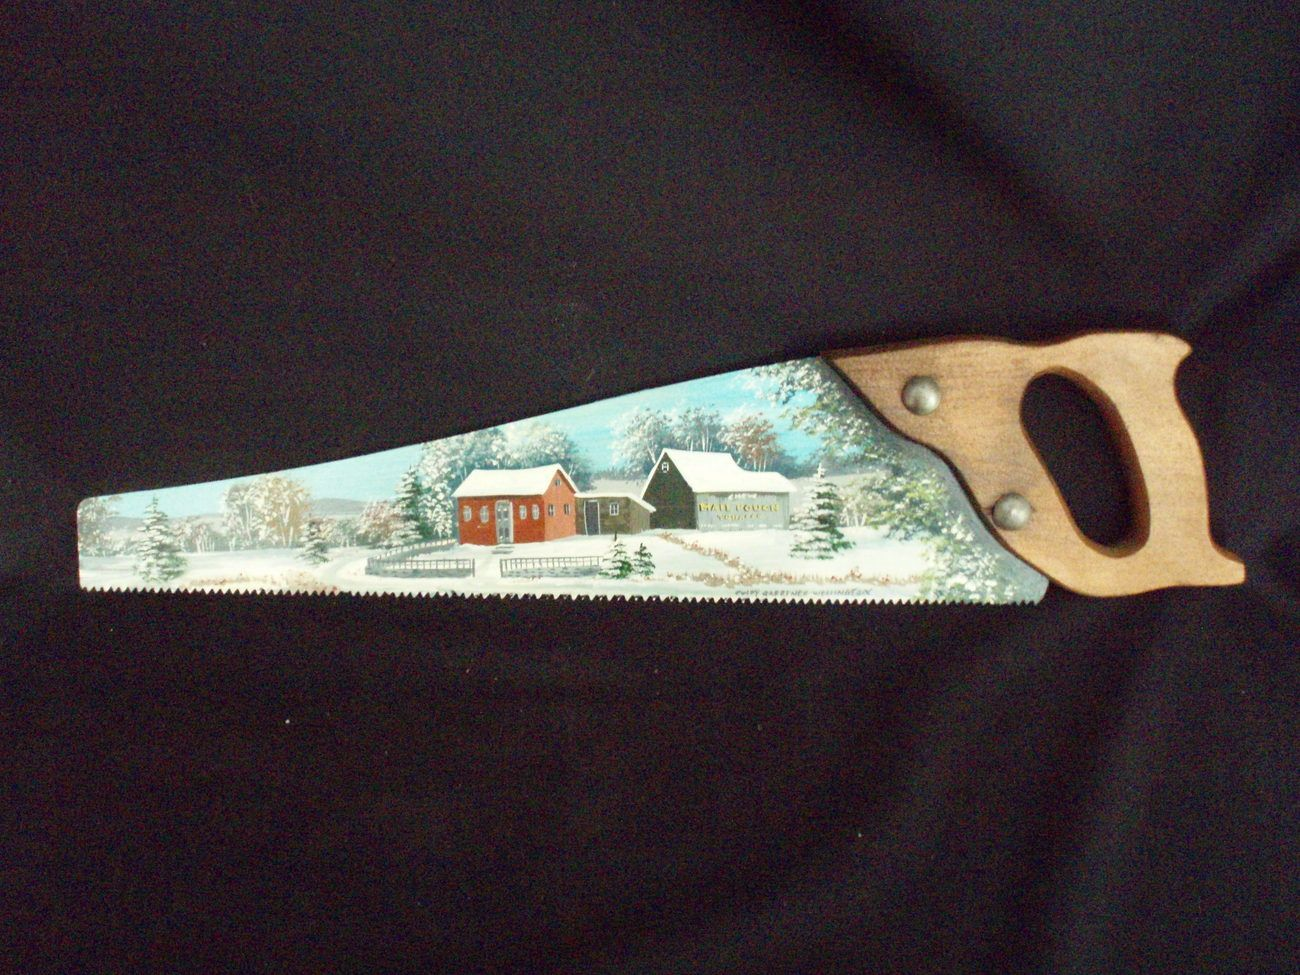 Small hand saw for crafts - Painted Handsaw See The Small Card With The Code On It The Seller Printed